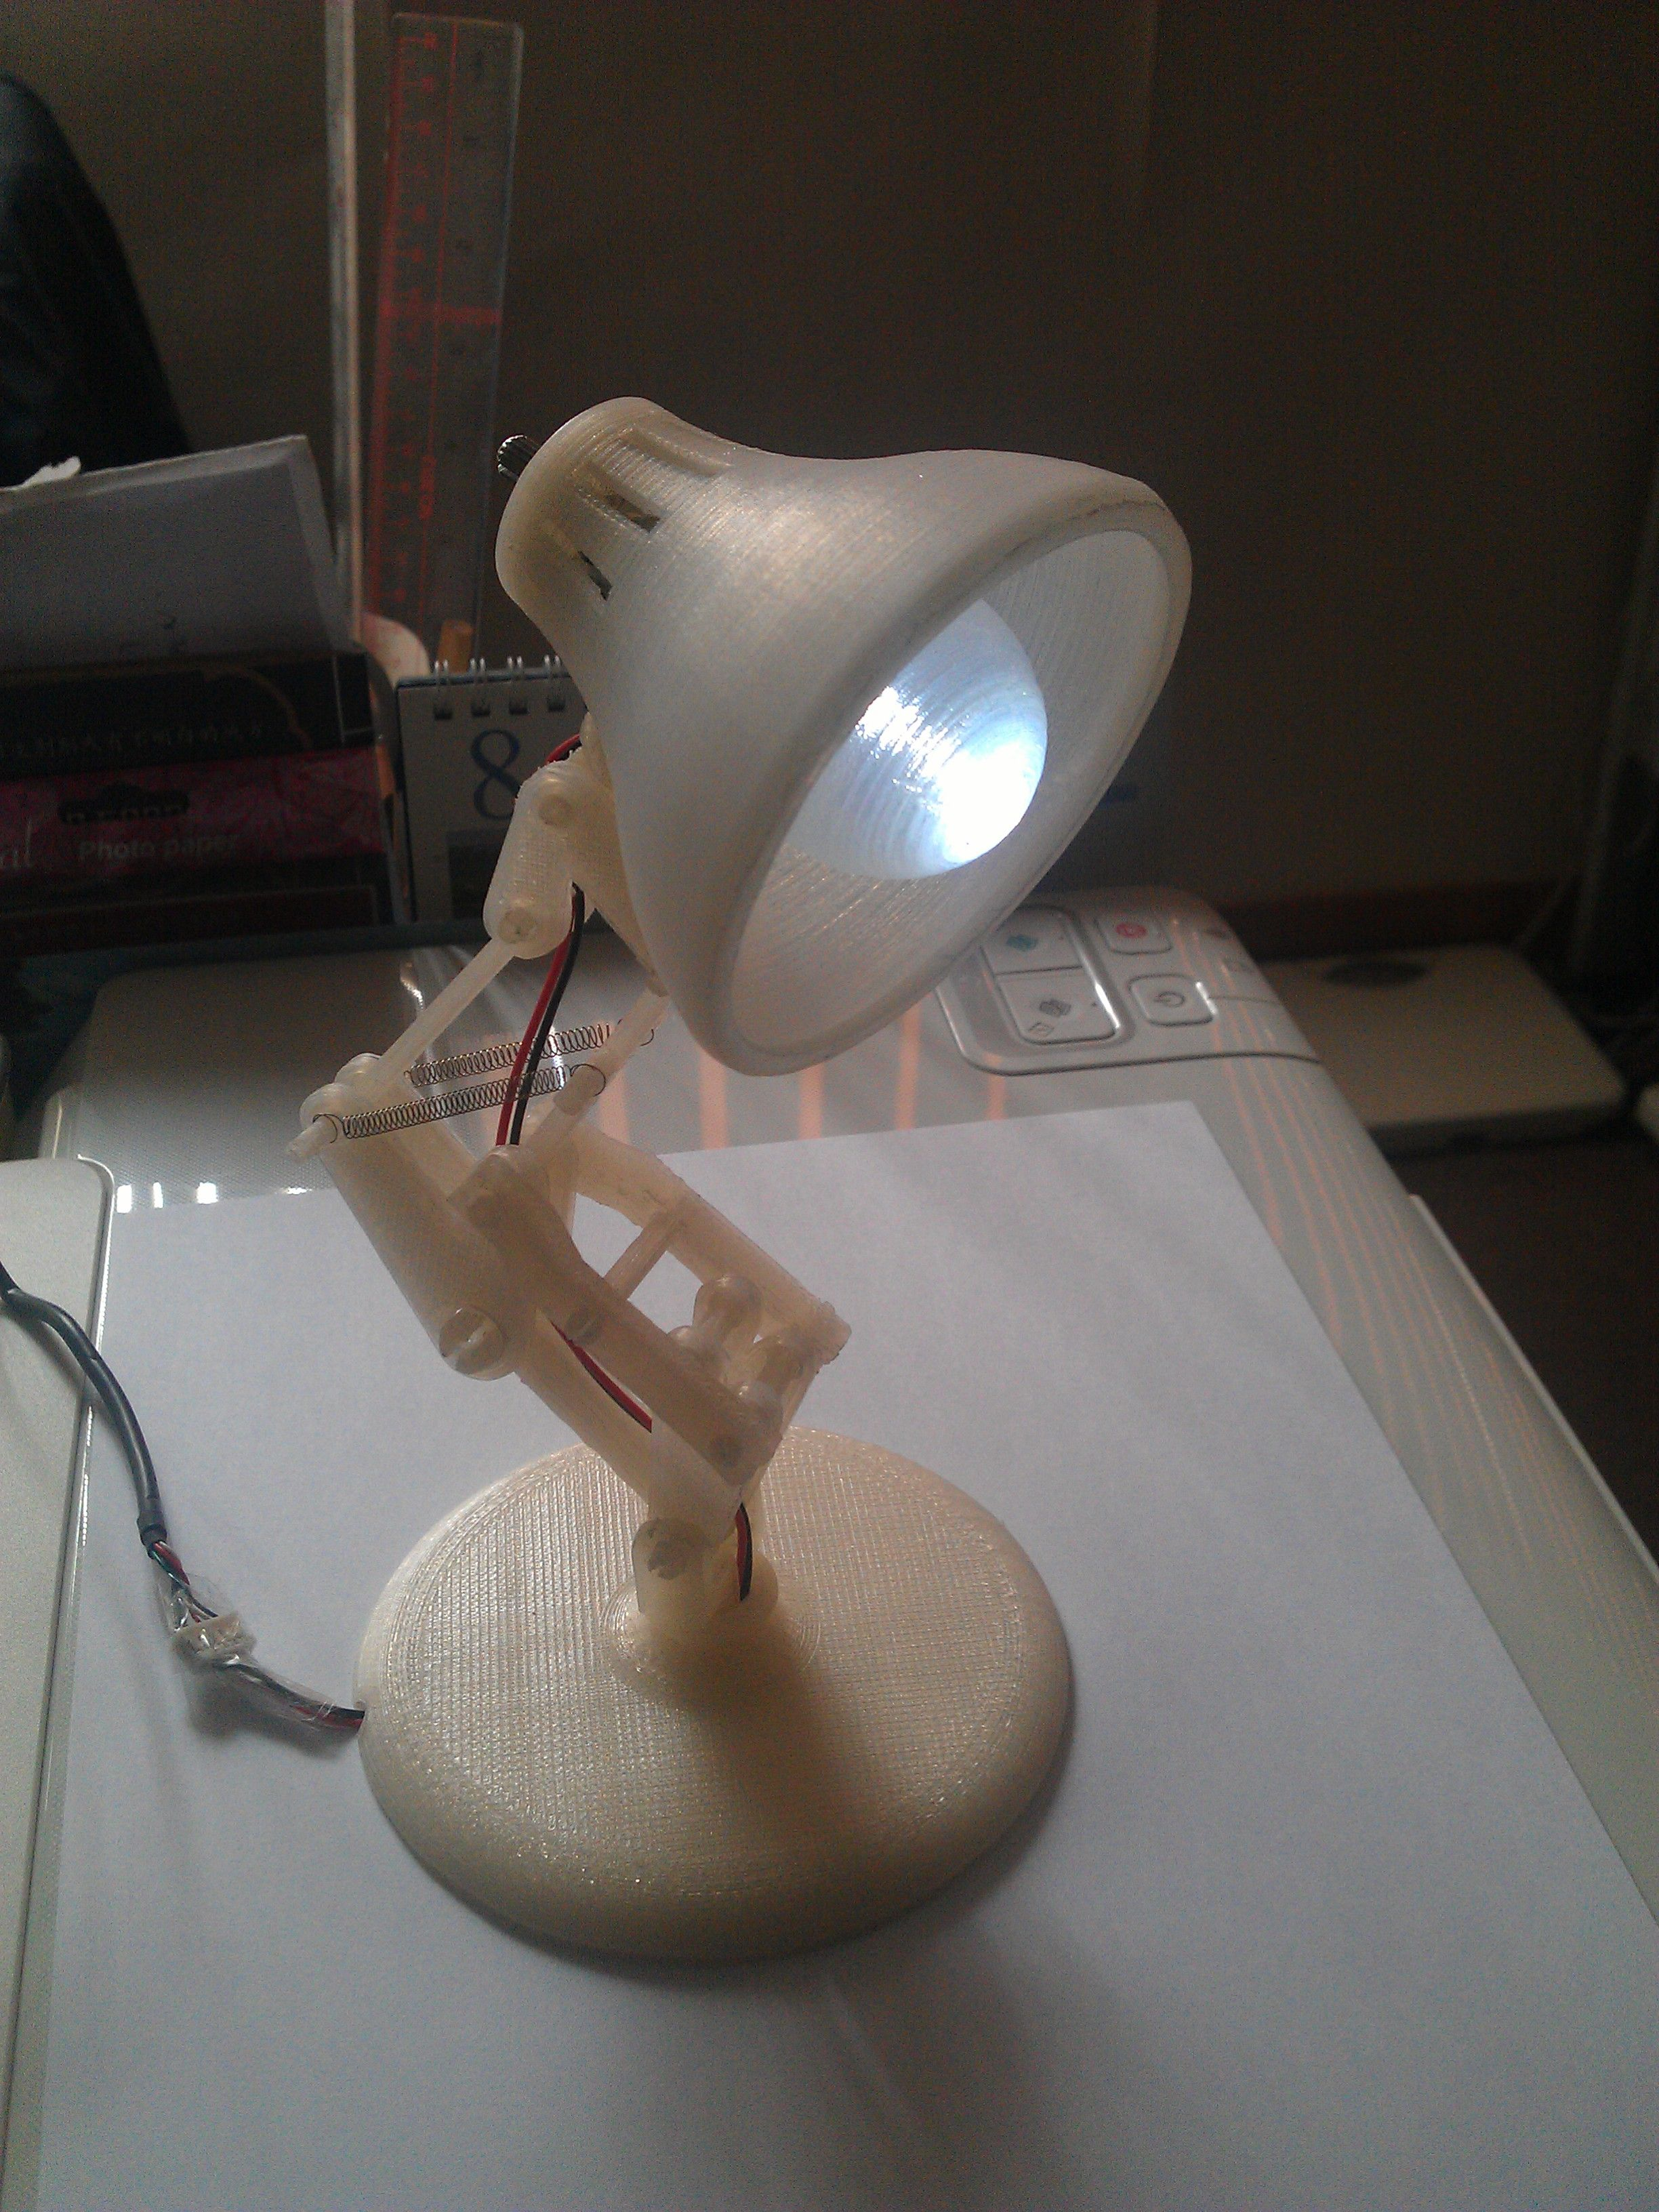 Centerpiece With The Flowers Luxo Jr Lamp Desk Lamp 3d Printing